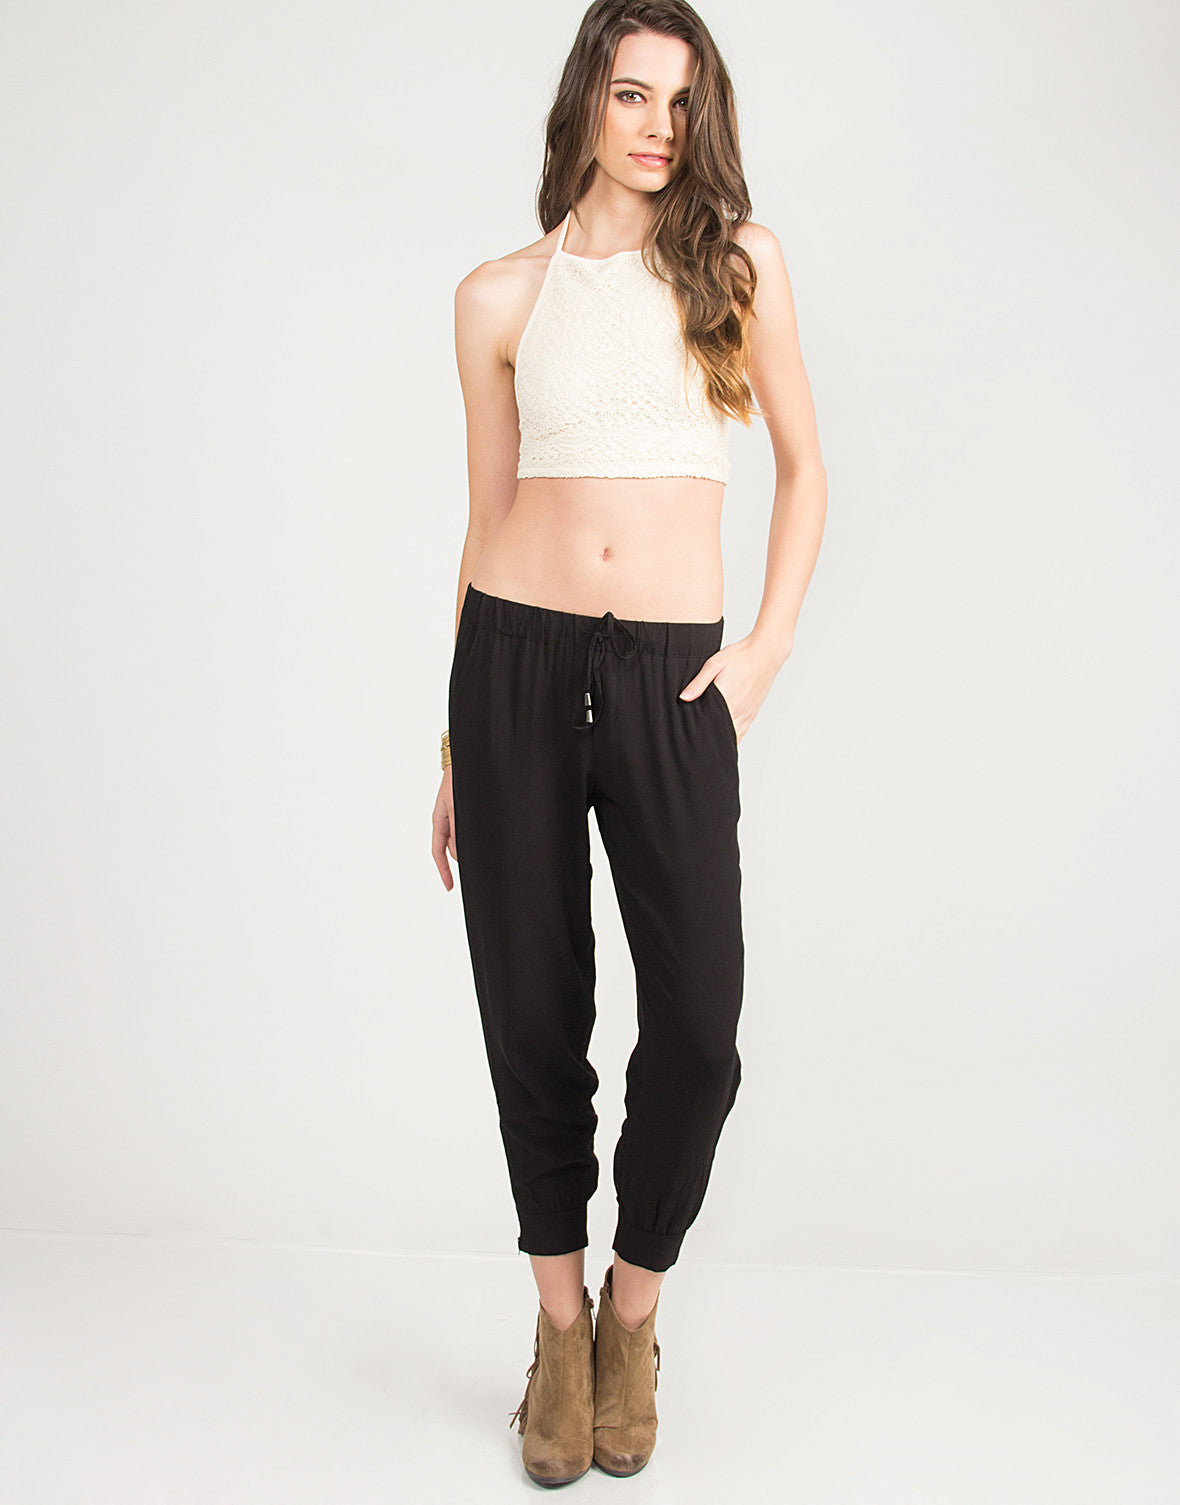 Ankle Zip Jogger Pants - Large